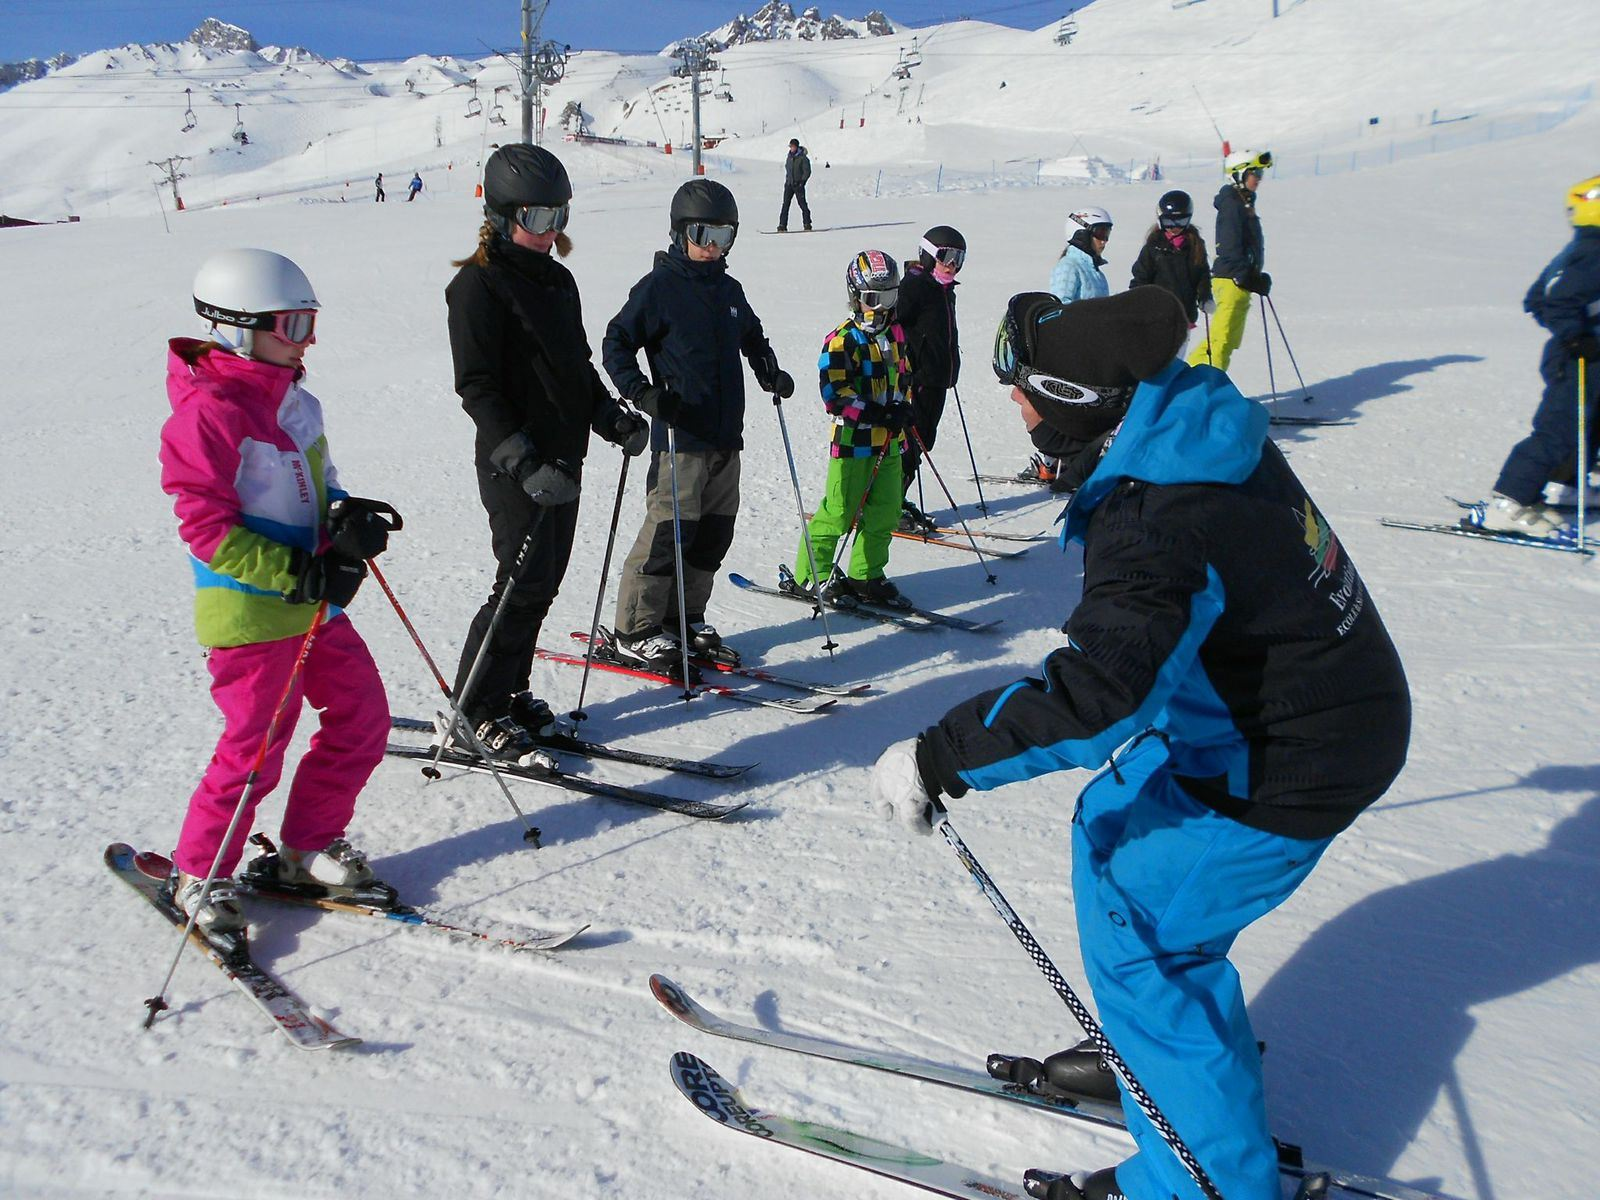 1b/Kids from 5 to 12 years old morning ski lessons